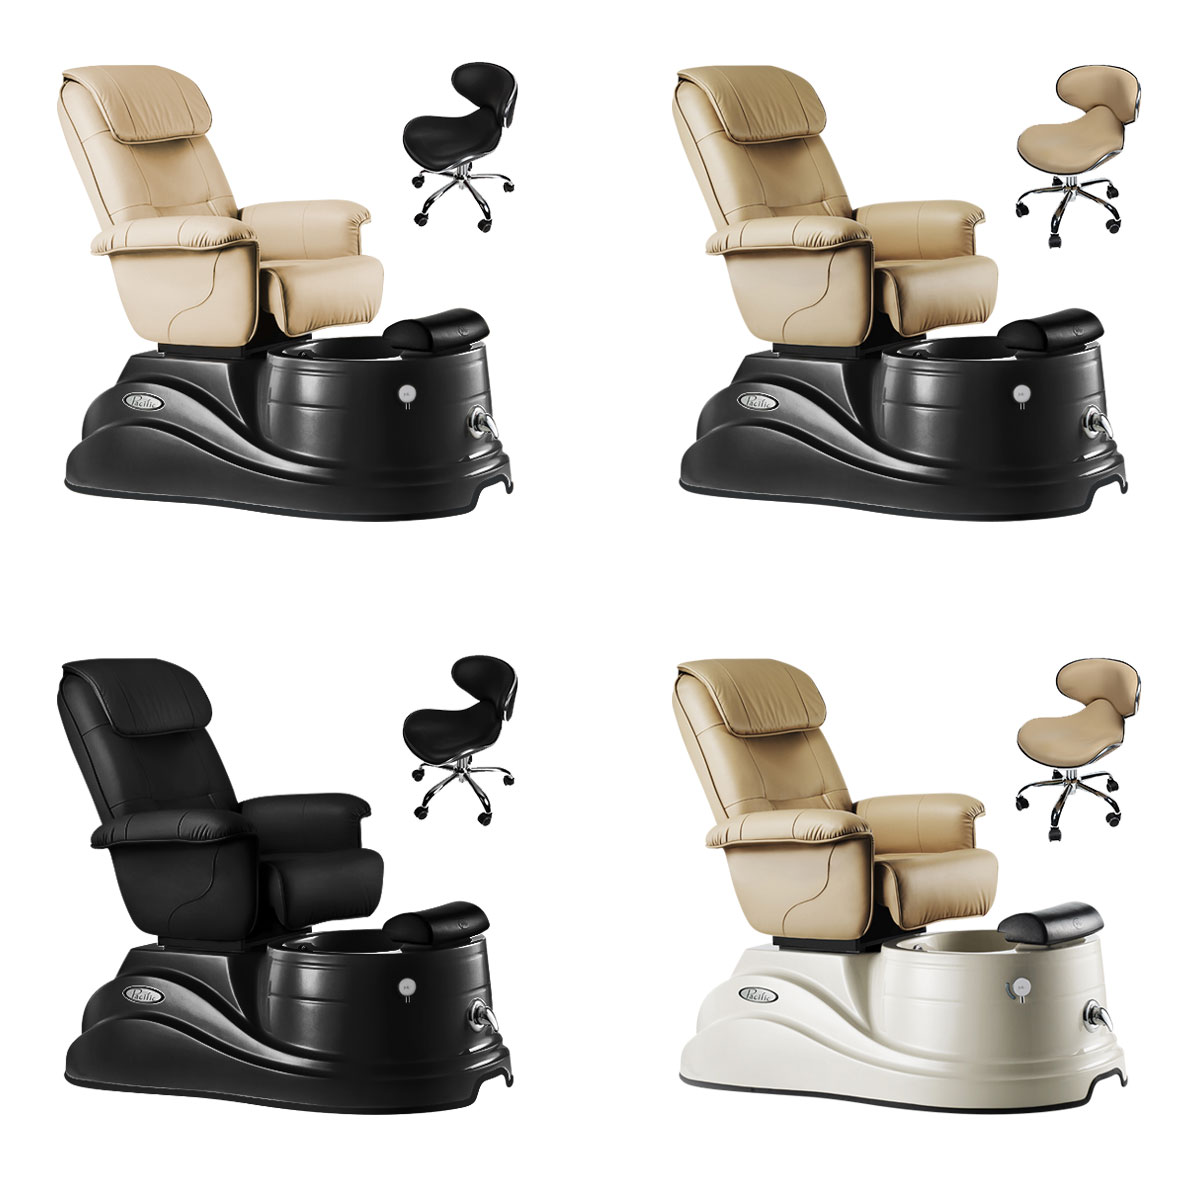 Pacific DS Day Spa Pedicure Spa Chair alternative product image 1